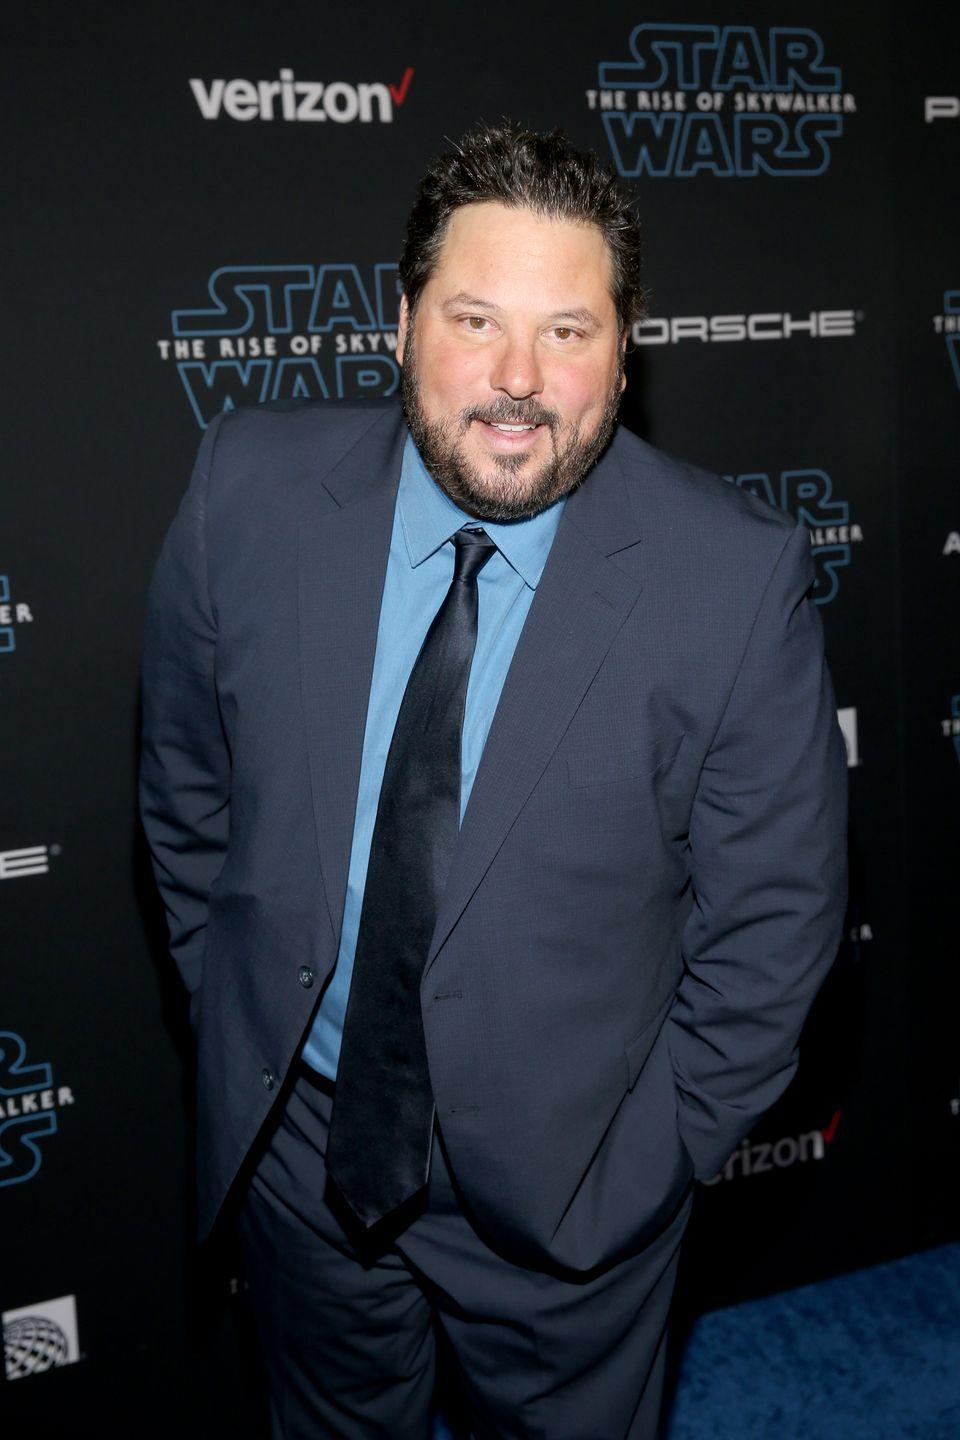 "<p>Wherever J.J. Abrams is, you'll most-likely see Greg Grunberg. The two are longtime pals, which means Grunberg has been in lots of ""little"" films like<em> Star Trek Beyond</em>, <em>Star Wars: Episode VII: The Force Awakens </em>and <em>Cloverfield</em>. In addition, he starred as played Matt Parkman on the hit super-powered drama <em>Heroes</em>, and the reboot <em>Heroes Reborn</em>. </p>"